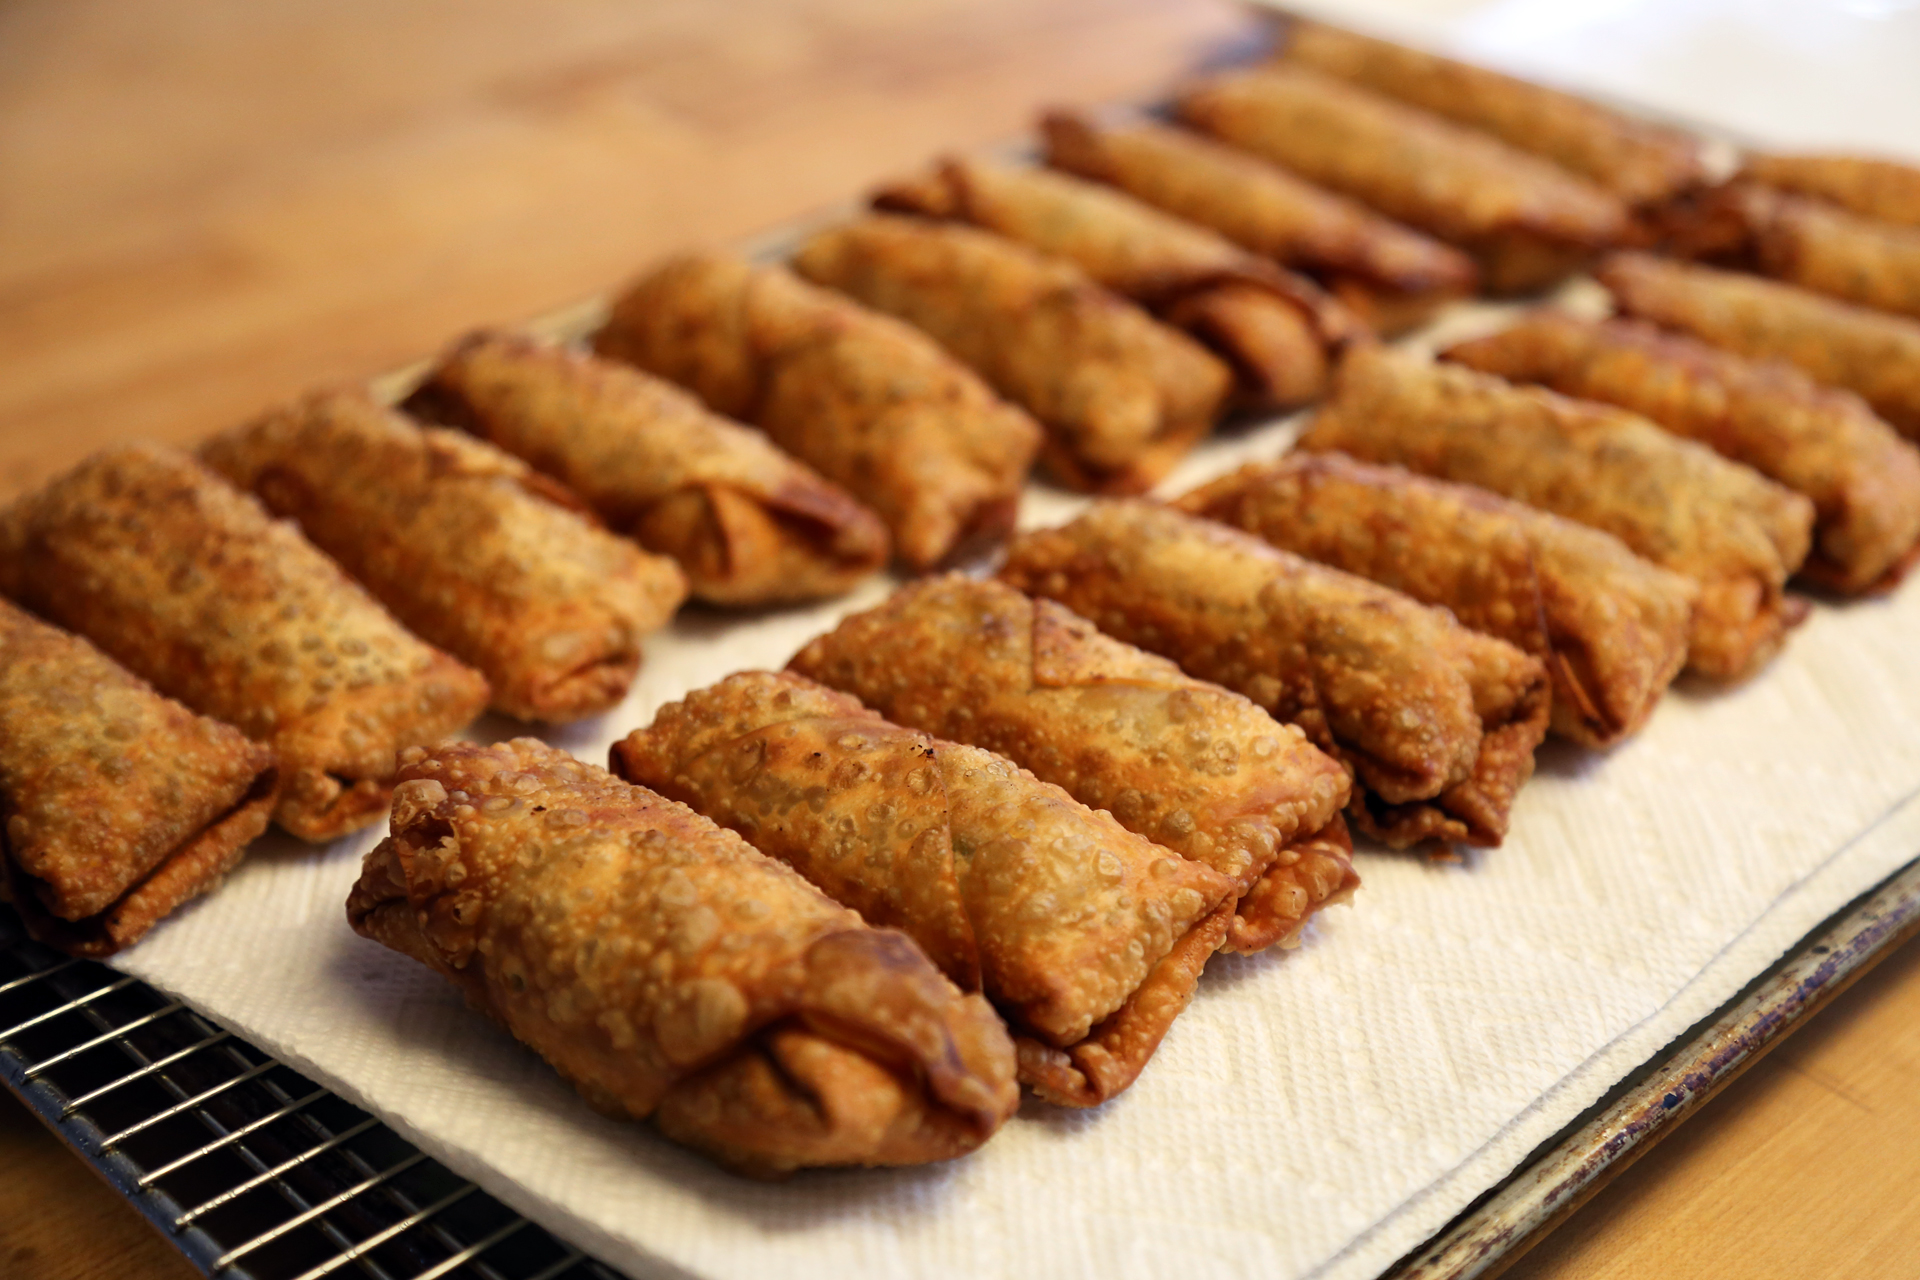 Line the rack with paper towels and keep them in the oven to stay warm while you finish frying the remaining eggrolls.